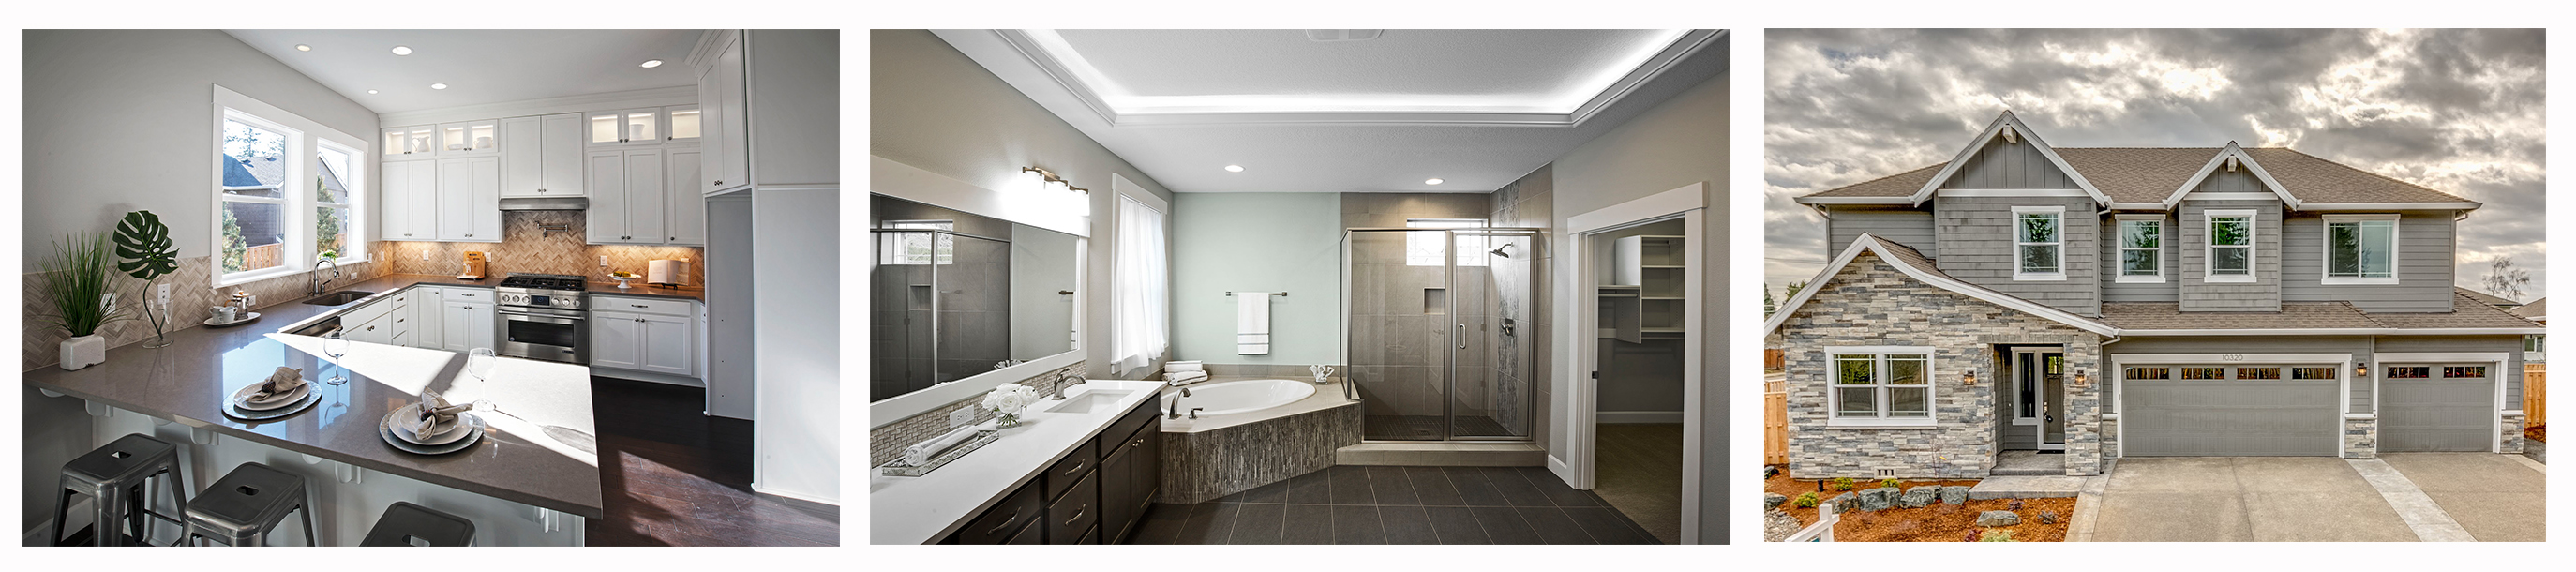 Mission homes finishes and style